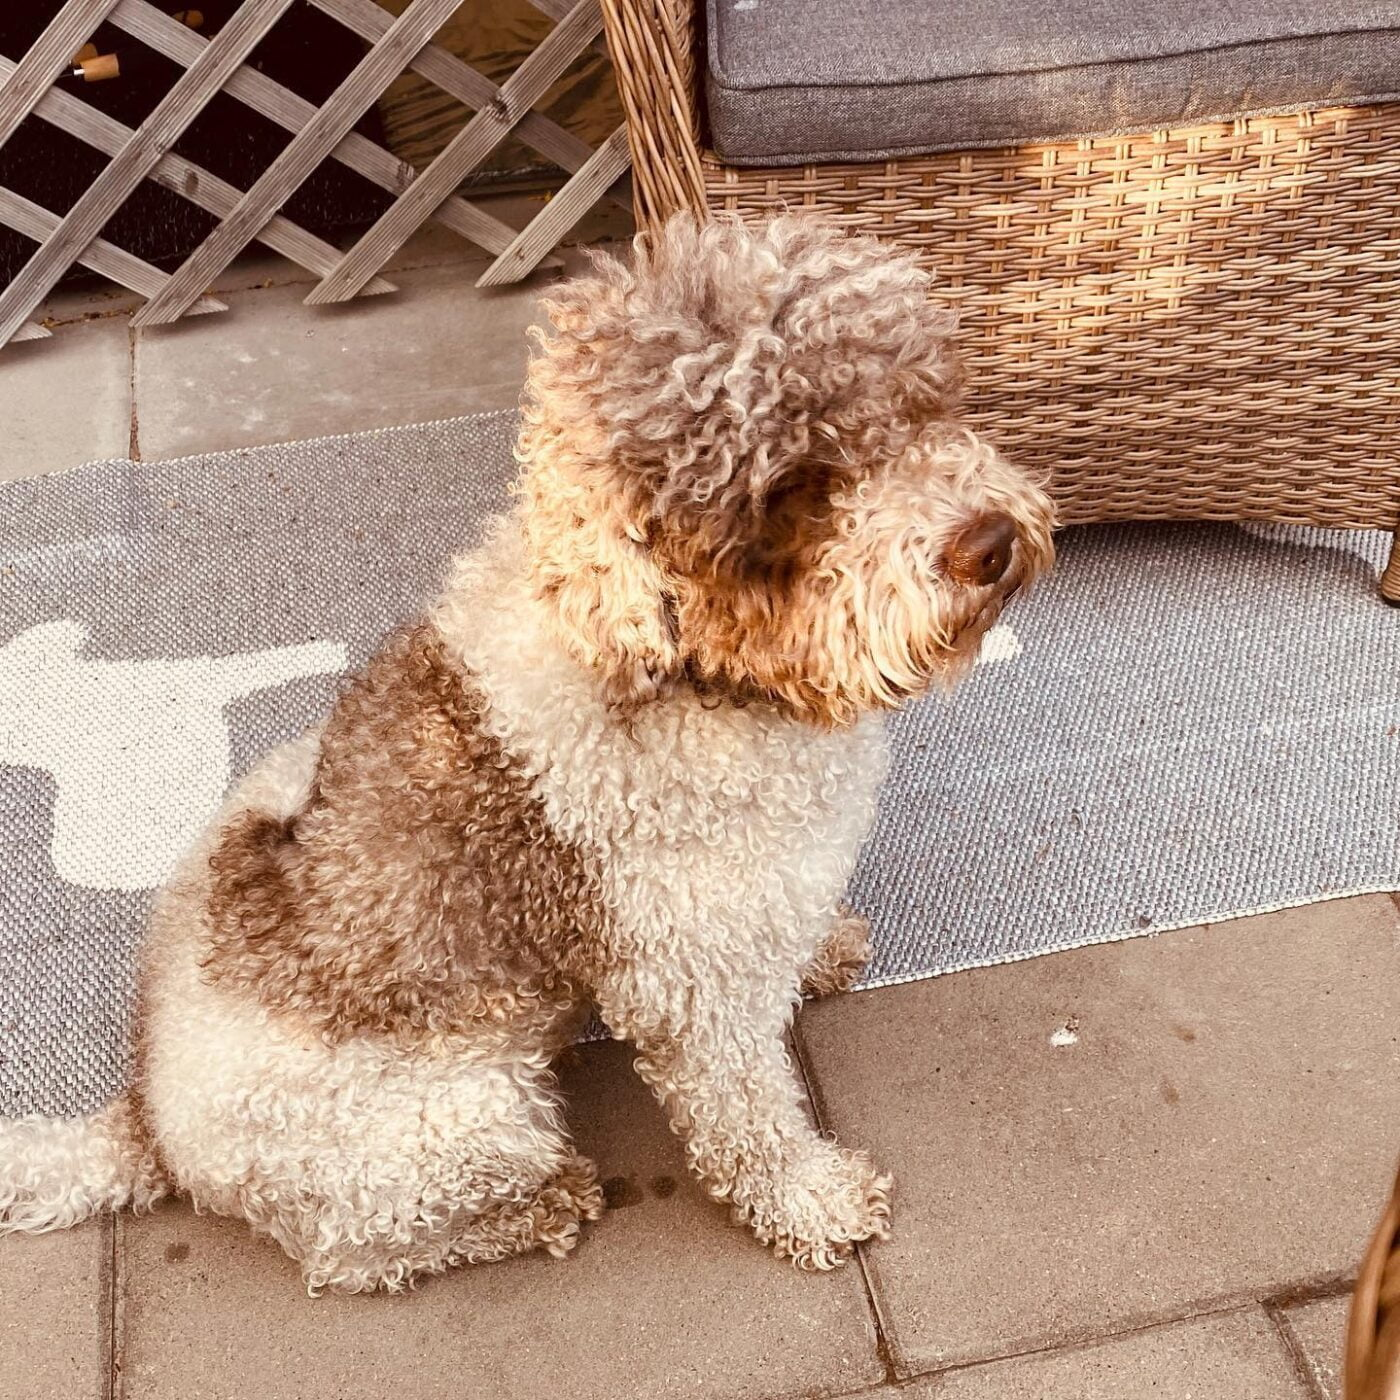 Oh boy I need that haircut now! #lagottosofinstagram #lagottopuppy #italianwaterdog #truffledog #lagottoromagnolo_daily #happydoglife #Lagotto #Dogs #DogsOfInstagram #Petstagram #Pets #Dogstagram #MyLife #MyDailyLife #PappaJagVillHaEnItalienare #MacLagotto #Falun #Sweden #FF #l4l #instafollow @knappare @liminglindblad @k.rowntree @taxen_coco @h3lvetesjavlar This was posted by my Dad: @kristerlindholmfalun